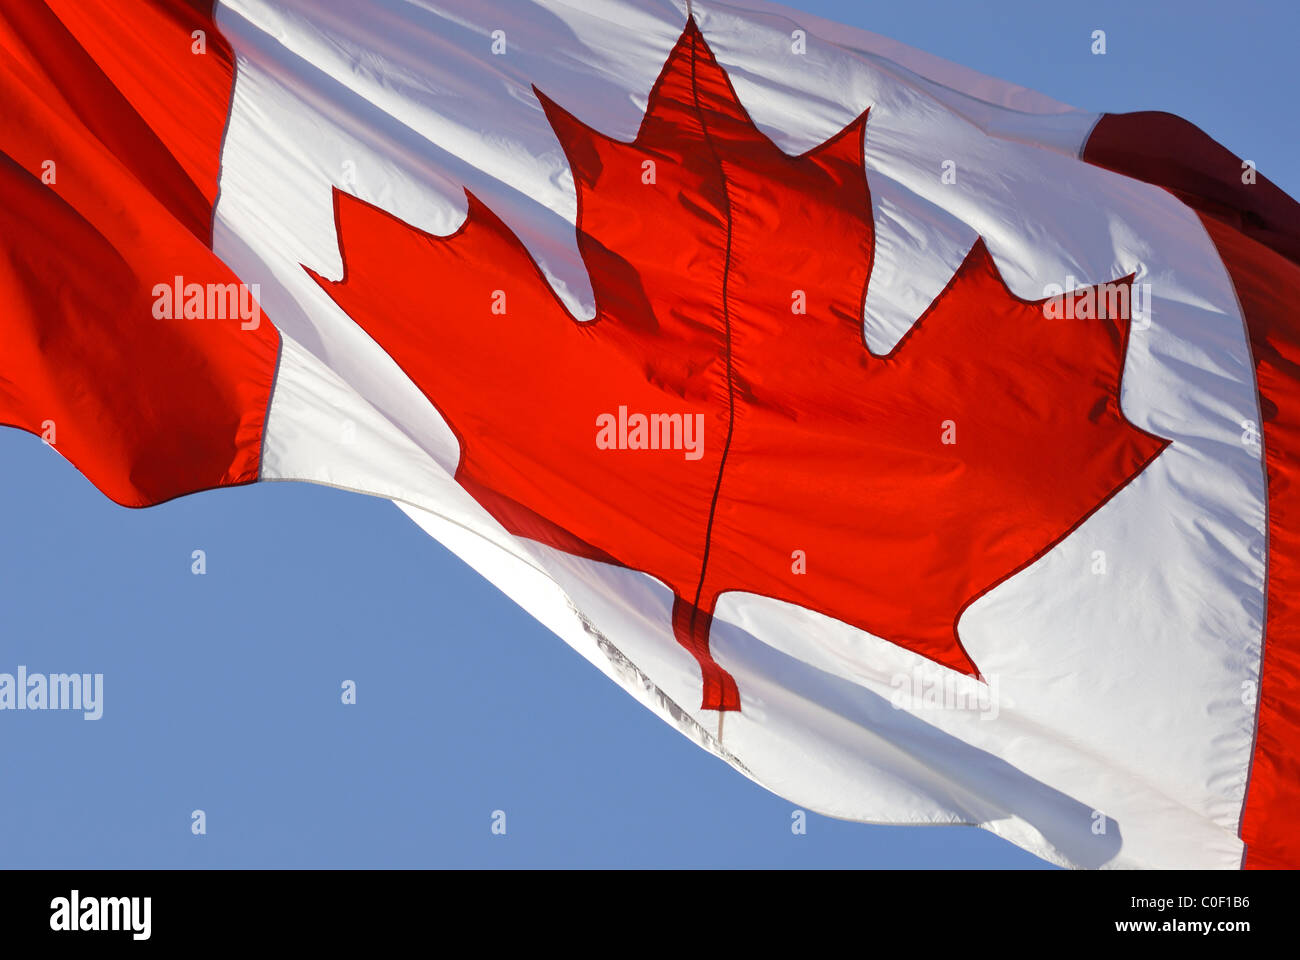 Canadian flag fluttering in the wind with a blue sky in the background. - Stock Image